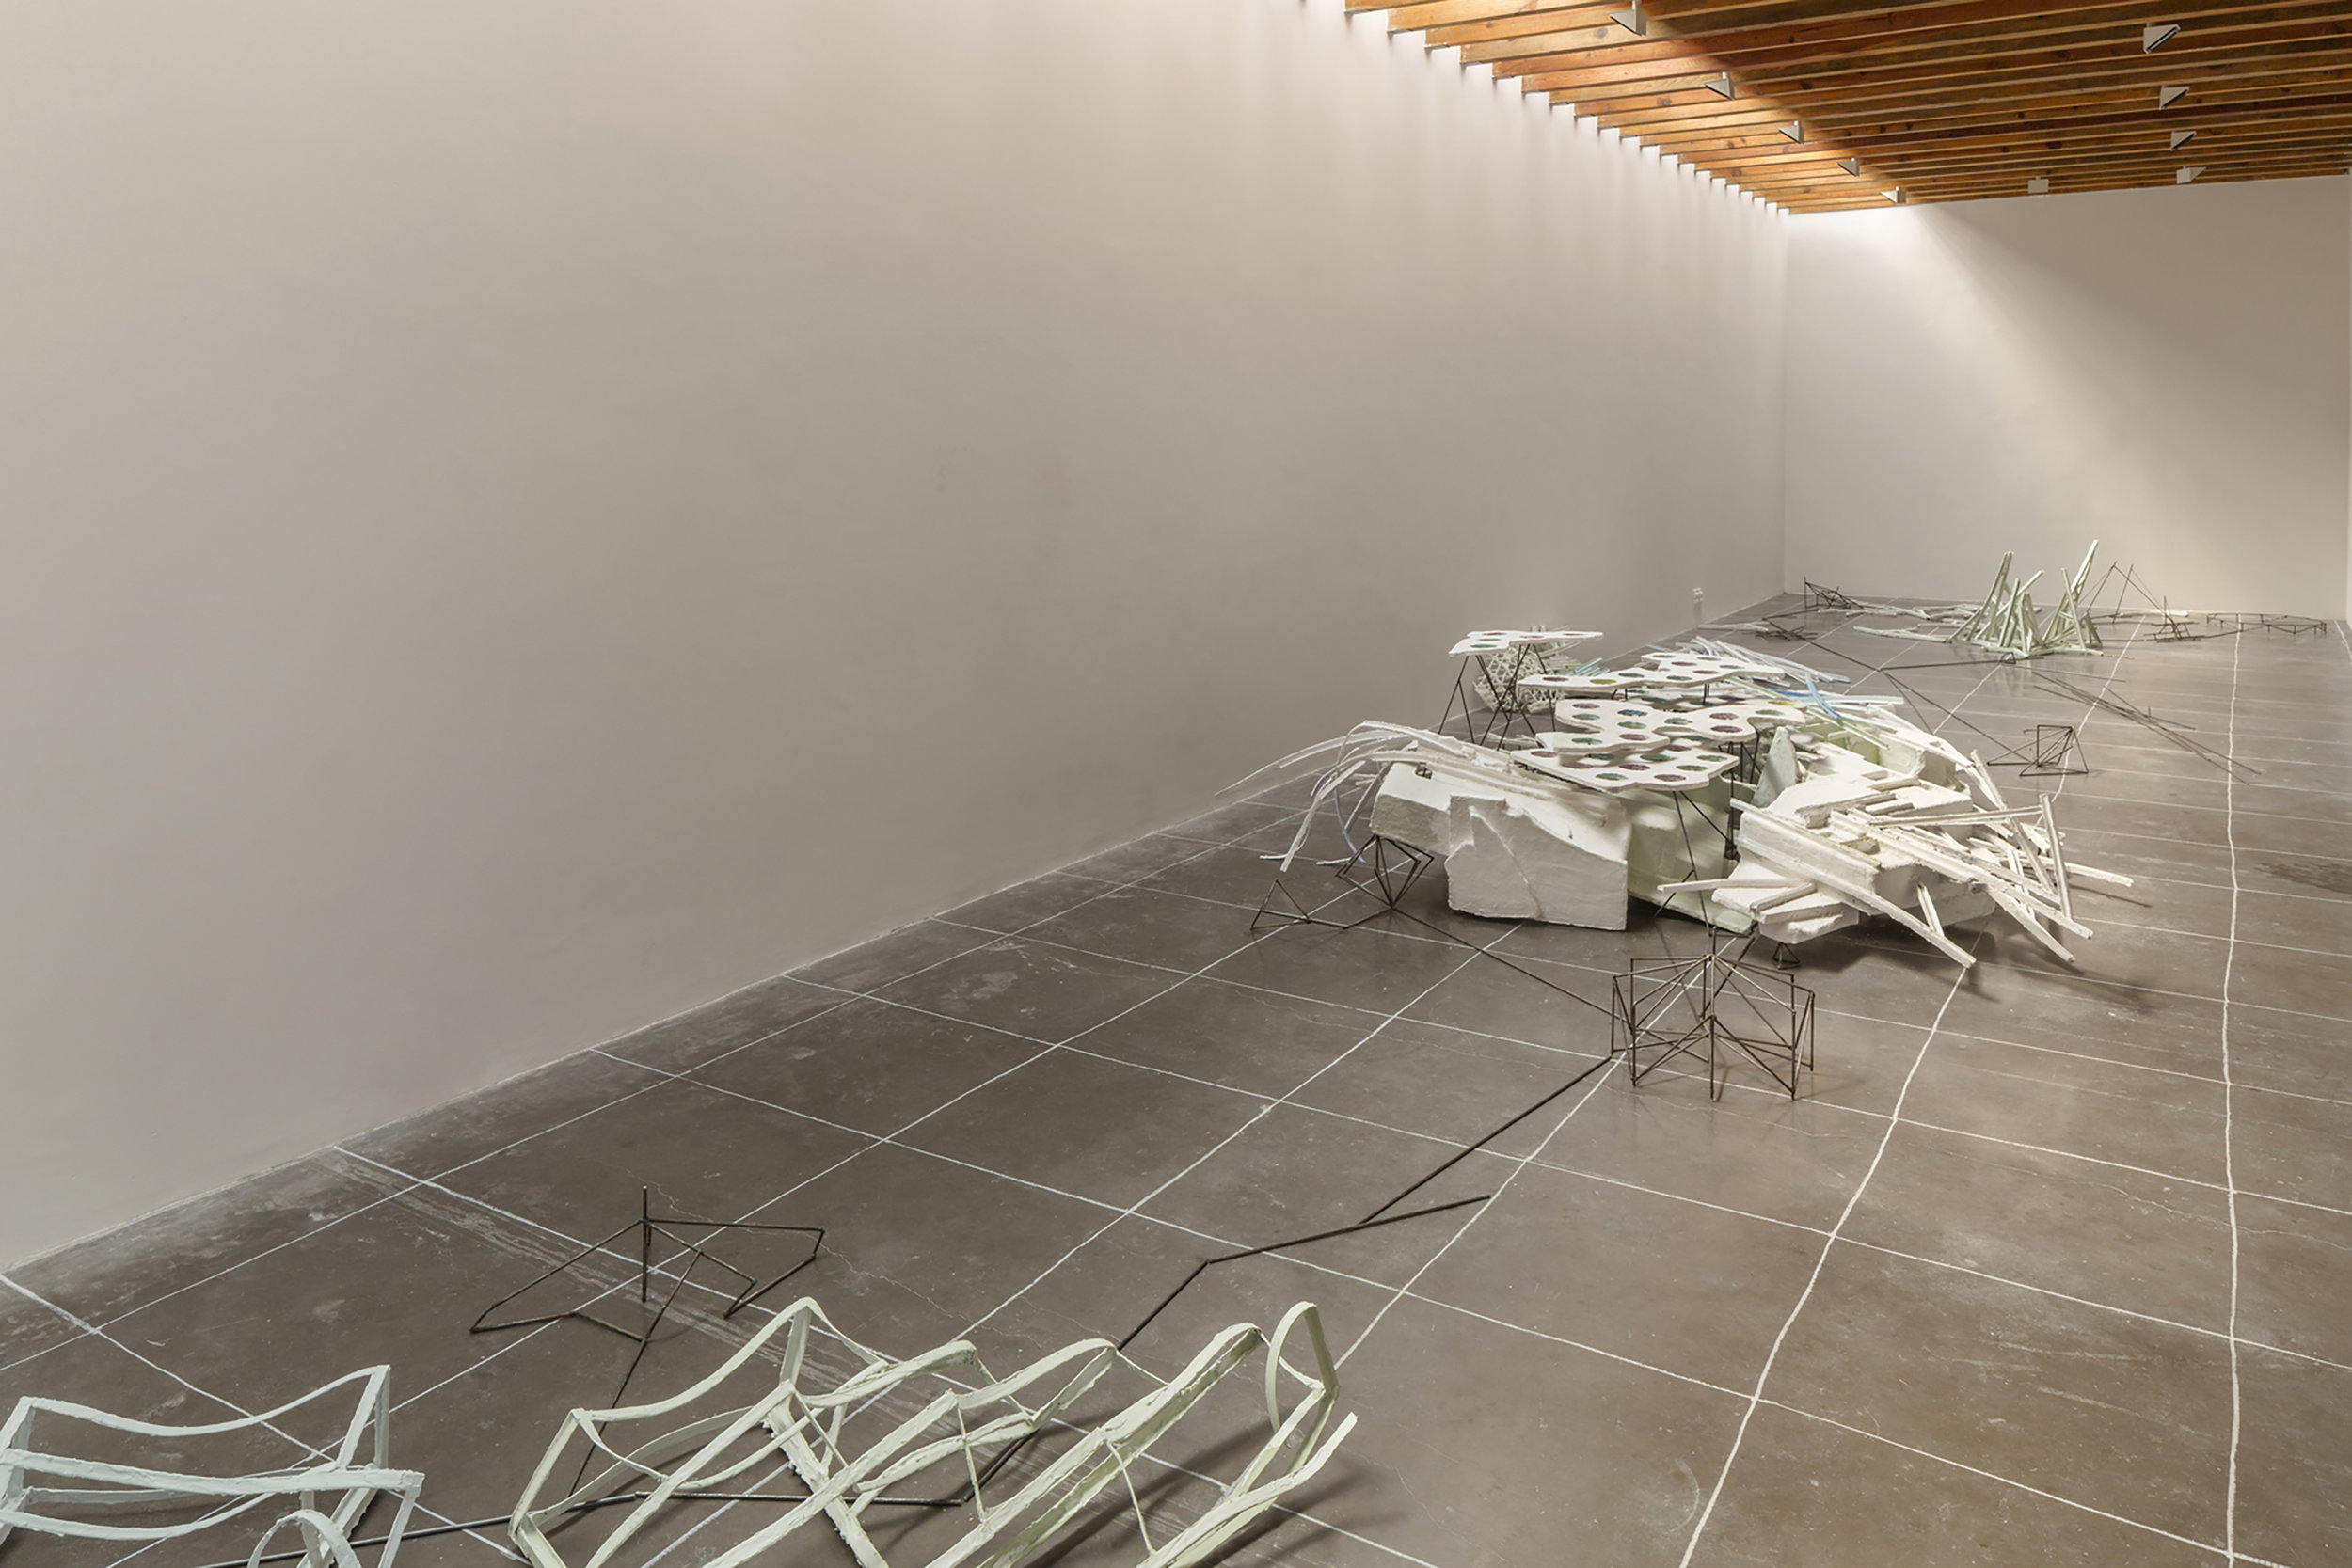 Isabel Nuño de Buen, scala, polis, taut, axis mundi (Constellation 1.2),  2015, Exhibition view, kurimanzutto, Mexico City, Chalk drawing on the floor, steel, styrofoam, papier maché, cardboard, plaster, watercolor, spraypaint, Aprox. 3x15m, Image Credit: Courtesy of the artist and kurimanzutto. Photo by Diego Pérez.